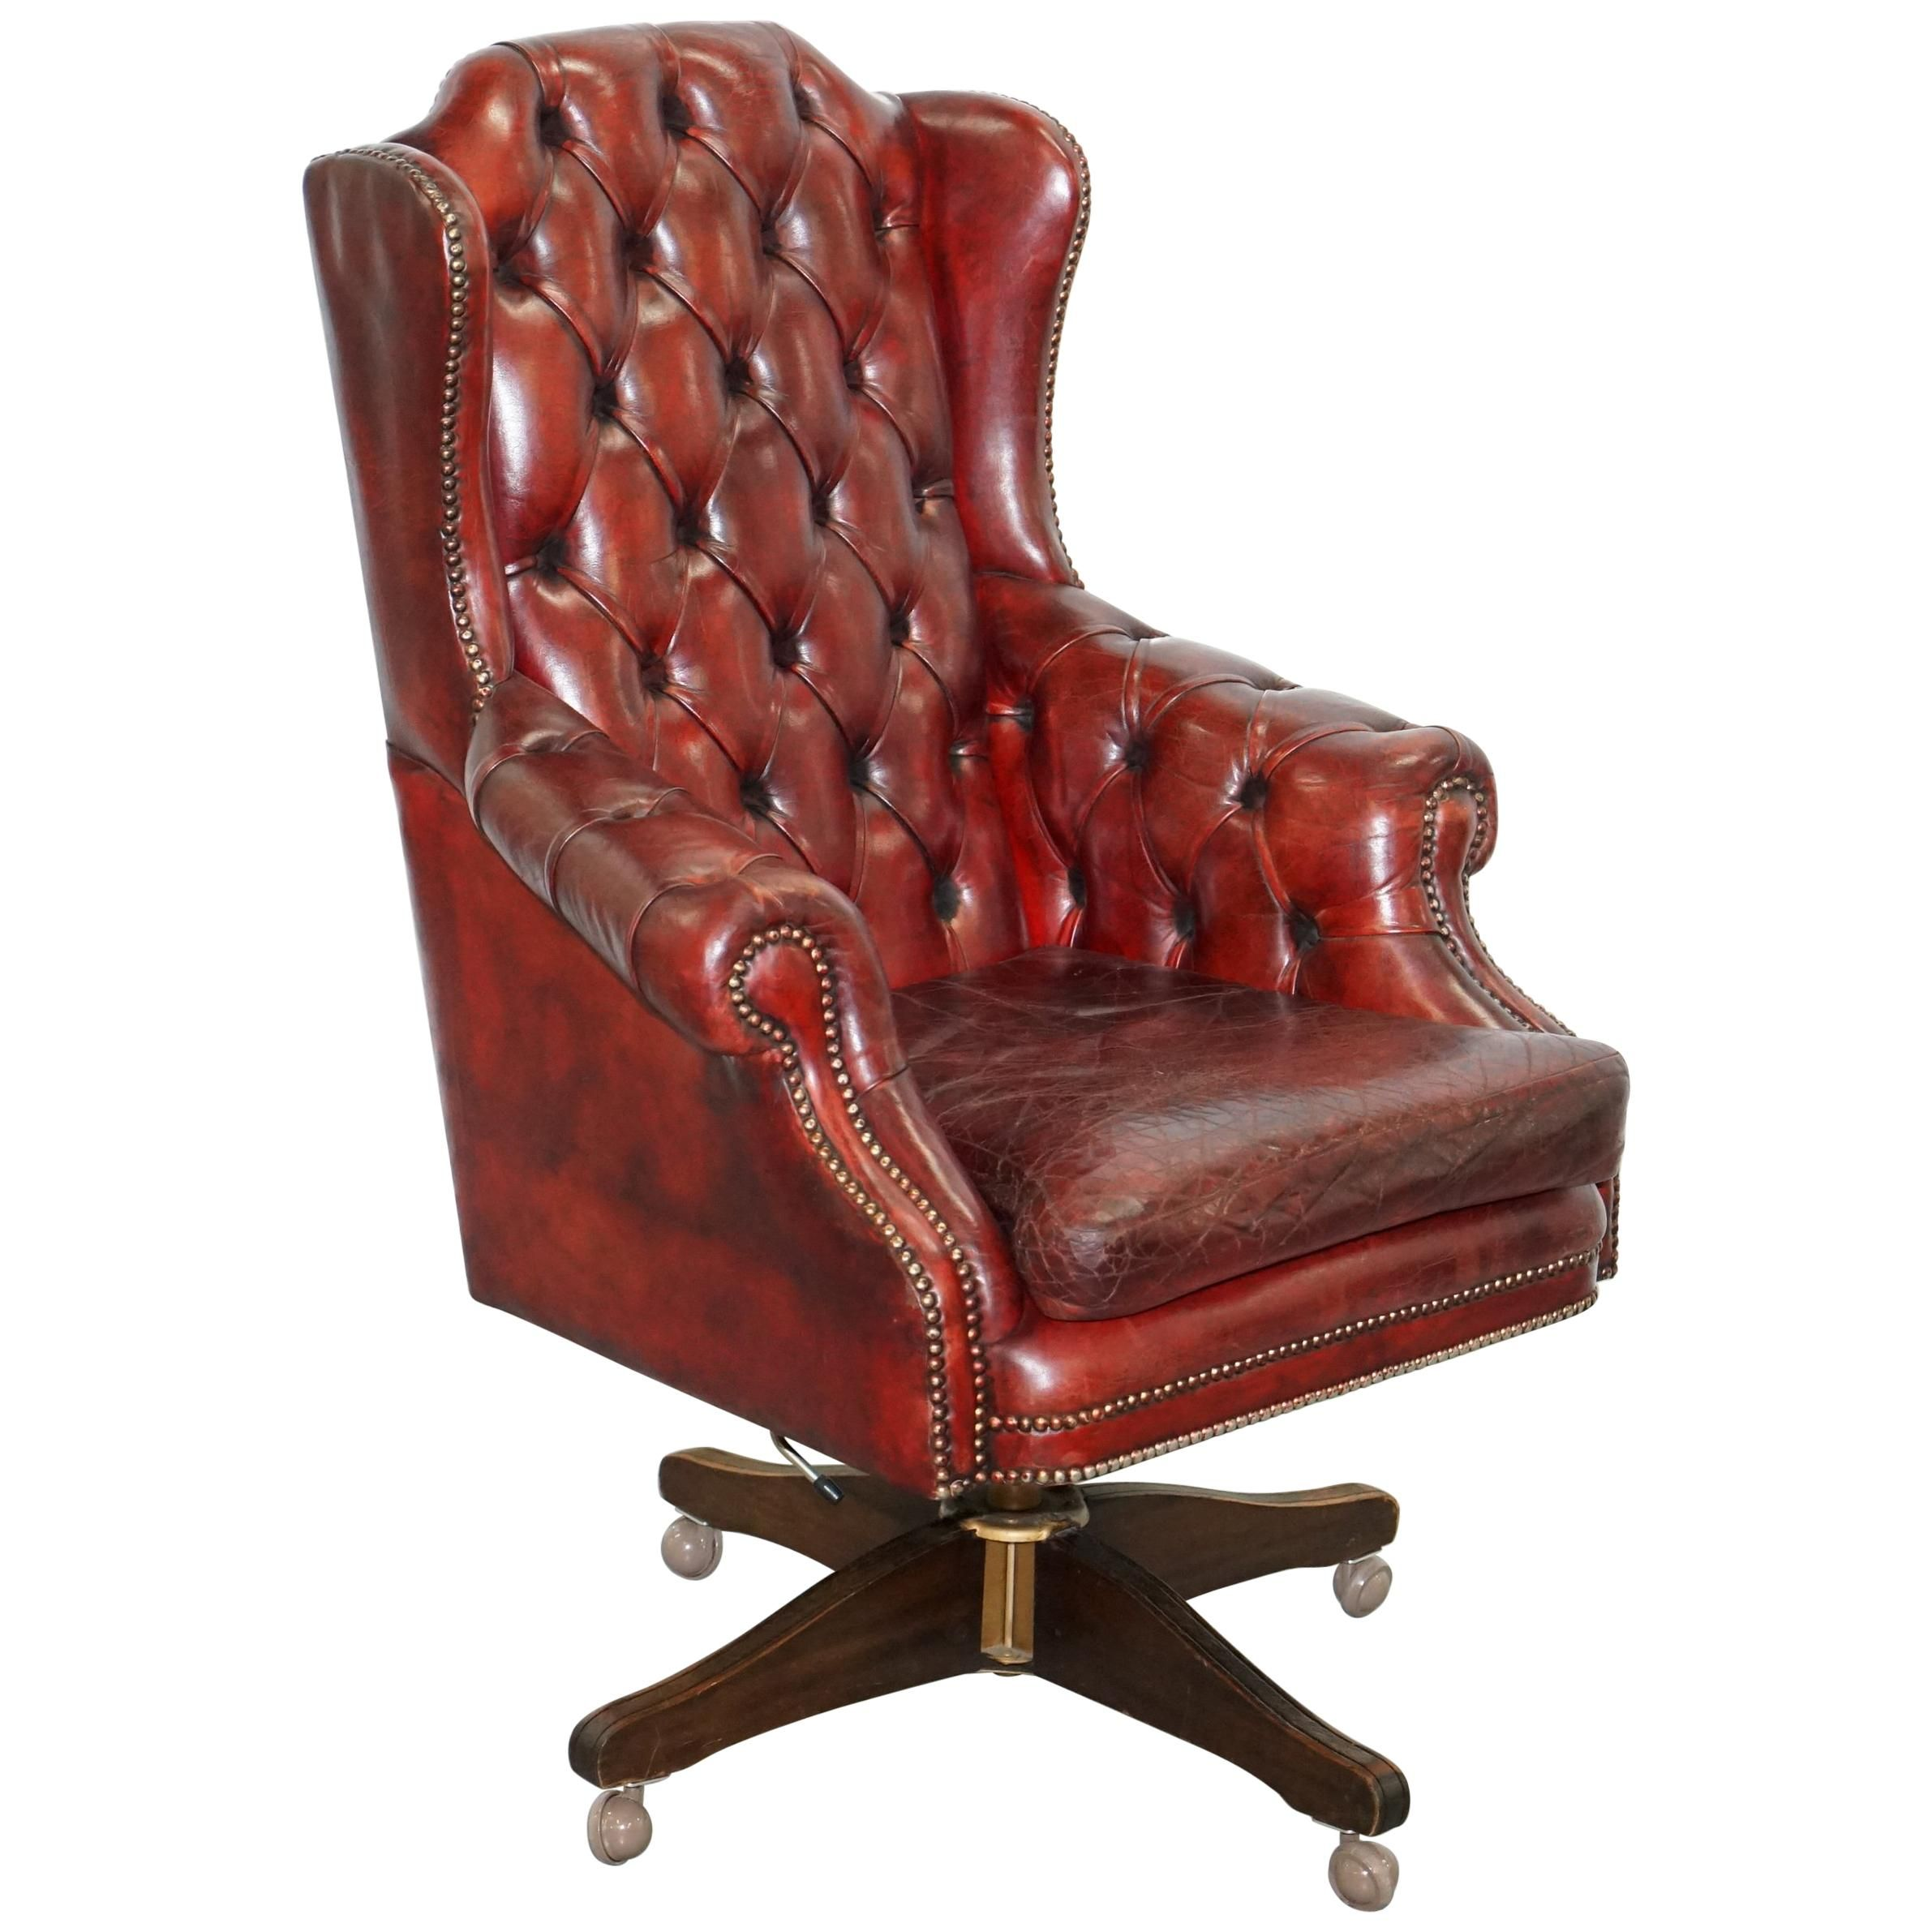 Astounding Leather Captains Chair Chairs Chair Modern Dining Uwap Interior Chair Design Uwaporg